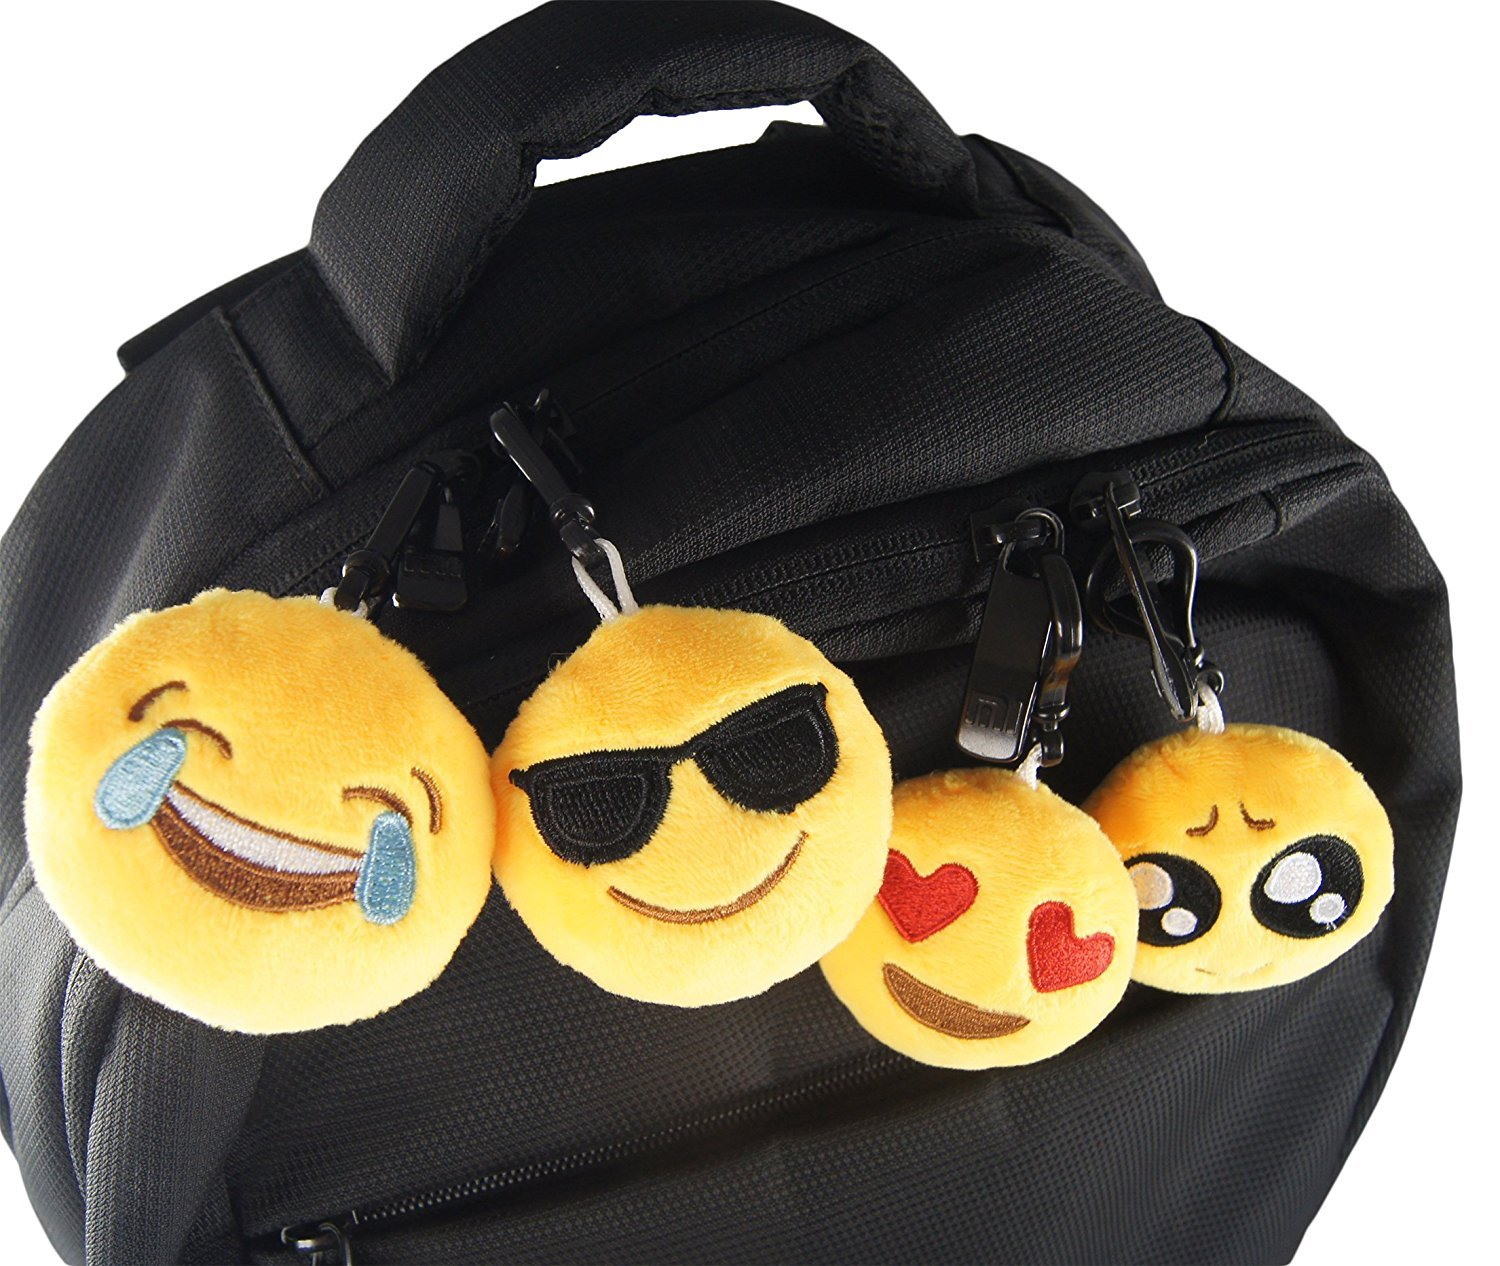 Emoticon Keychain Decorations Kids Party Supplies Favors 8 Pack TOPBY 2 Emoji Mini Plush Pillows Class Birthday Present Bag Fillers